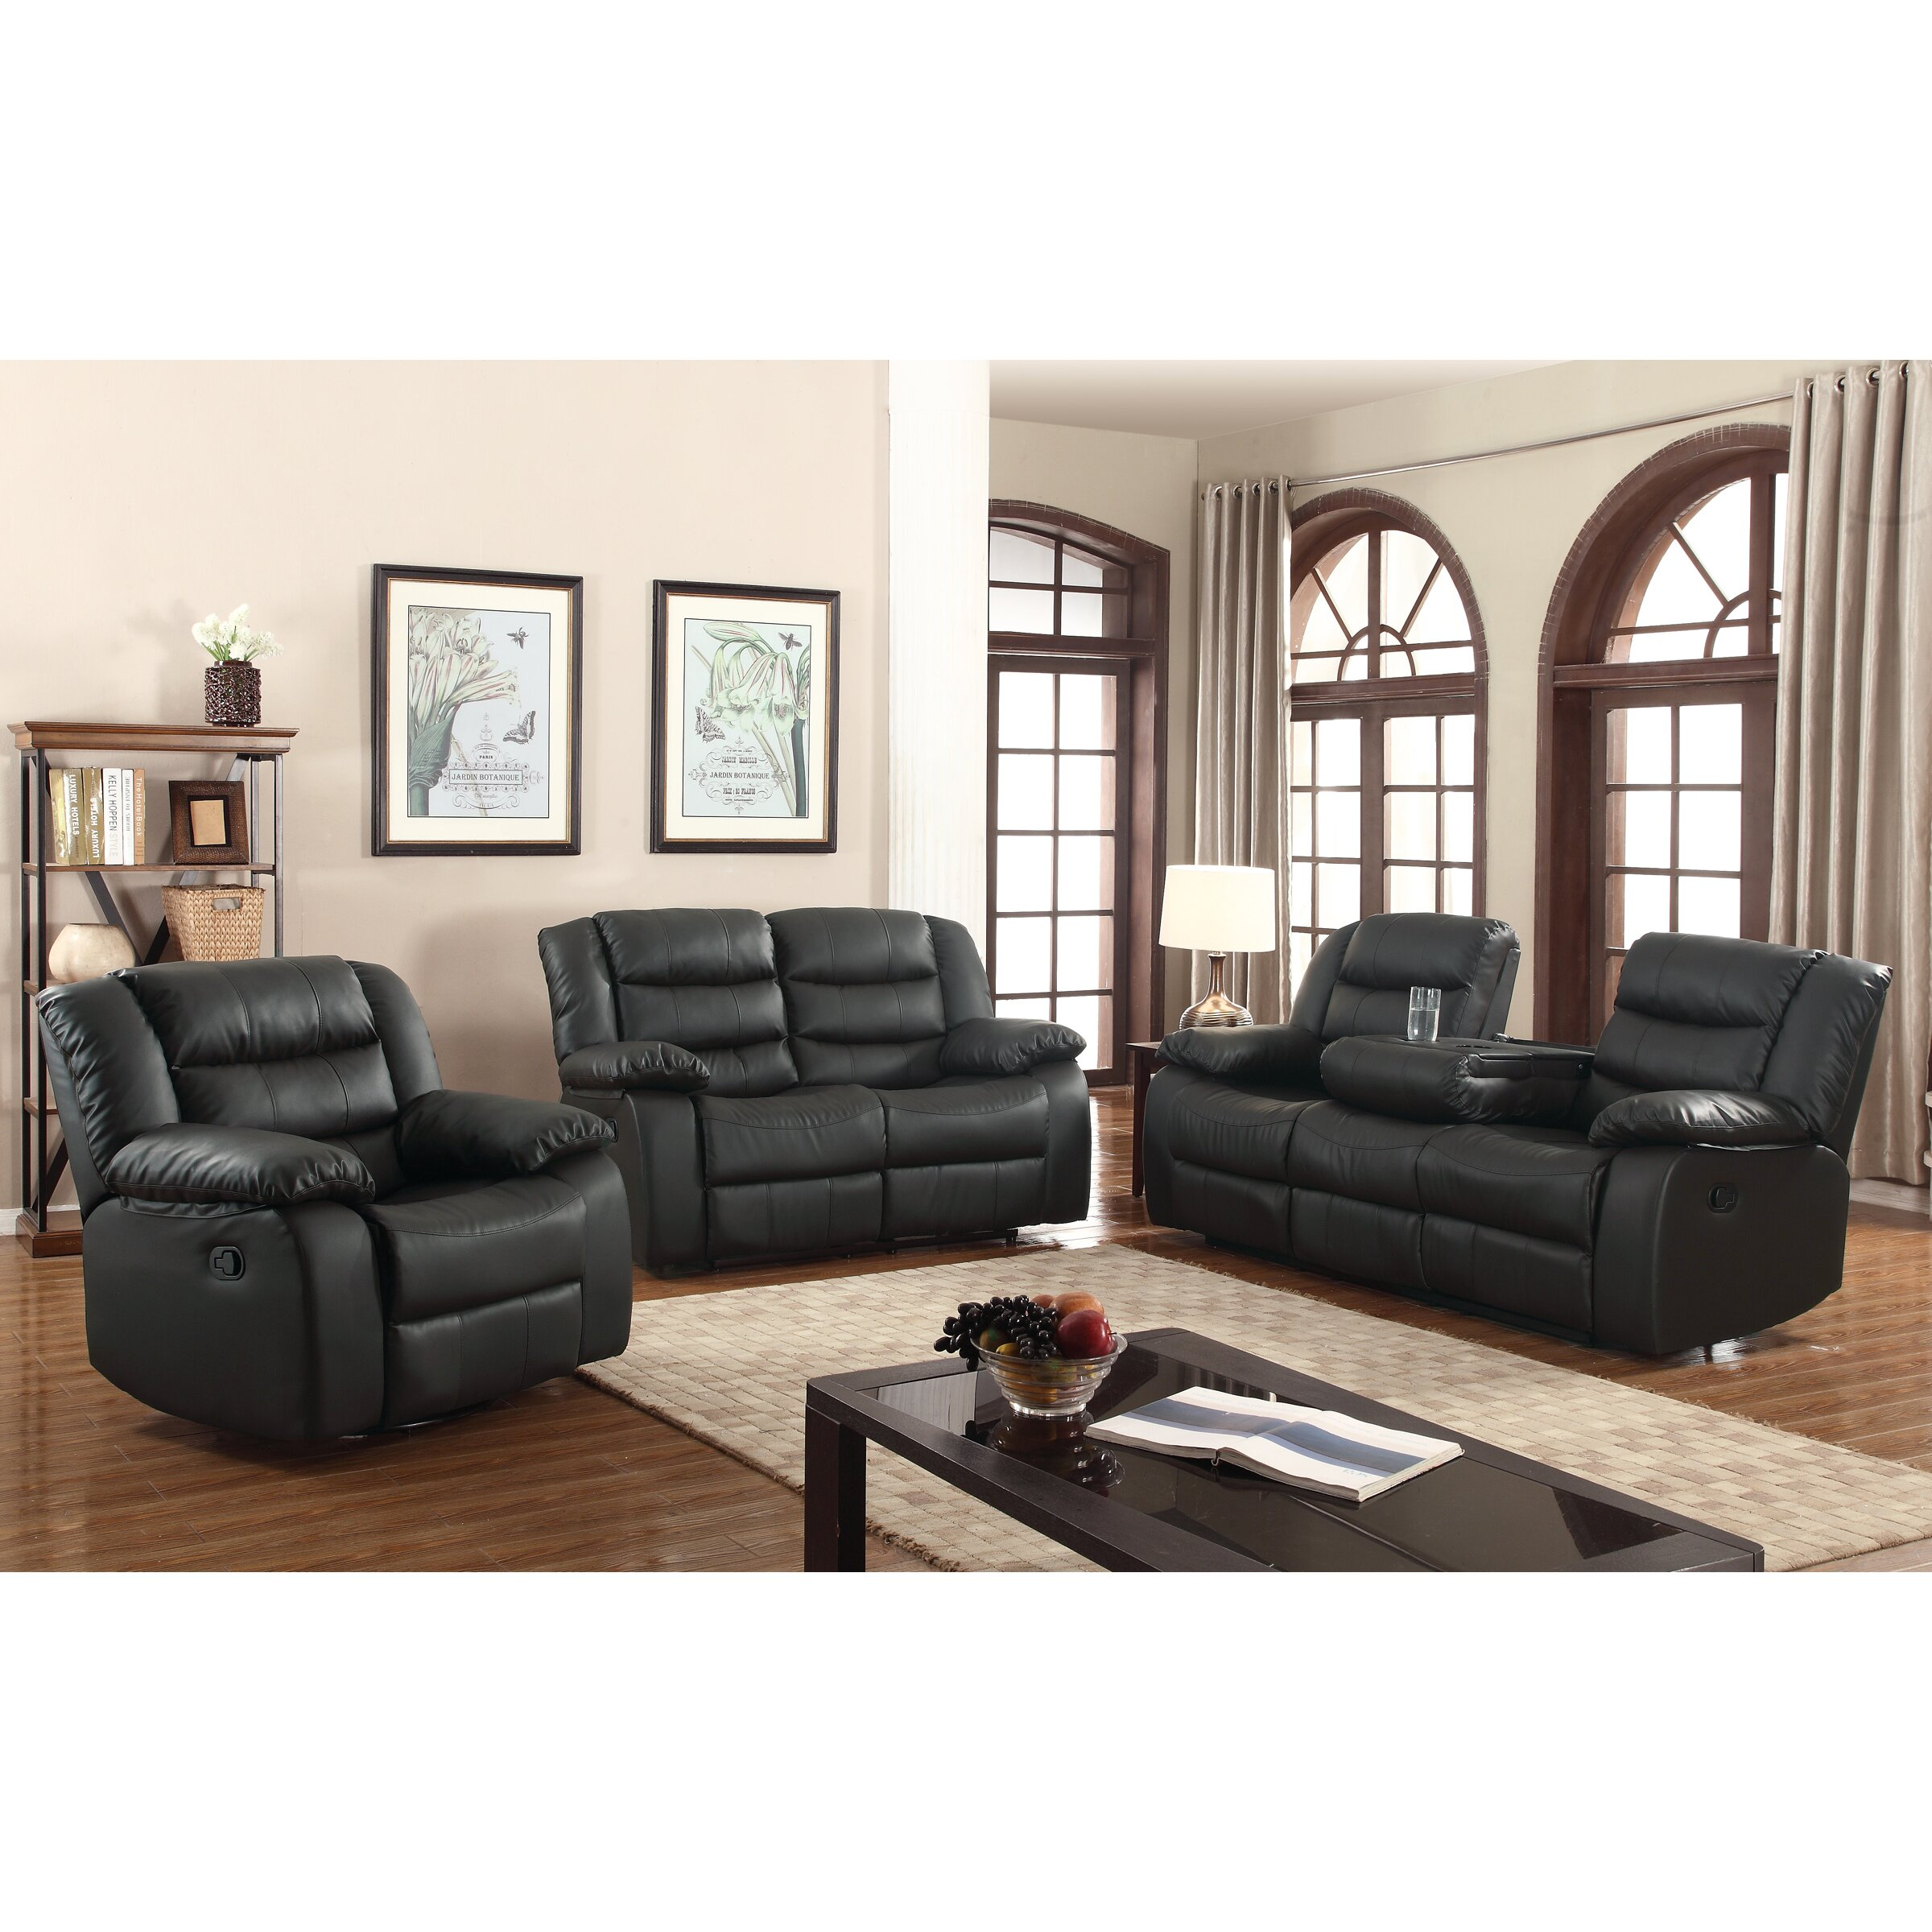 Wayfair Living Room Sets Houston Leather Living Room Set Wayfair Bahama Leather Living Room